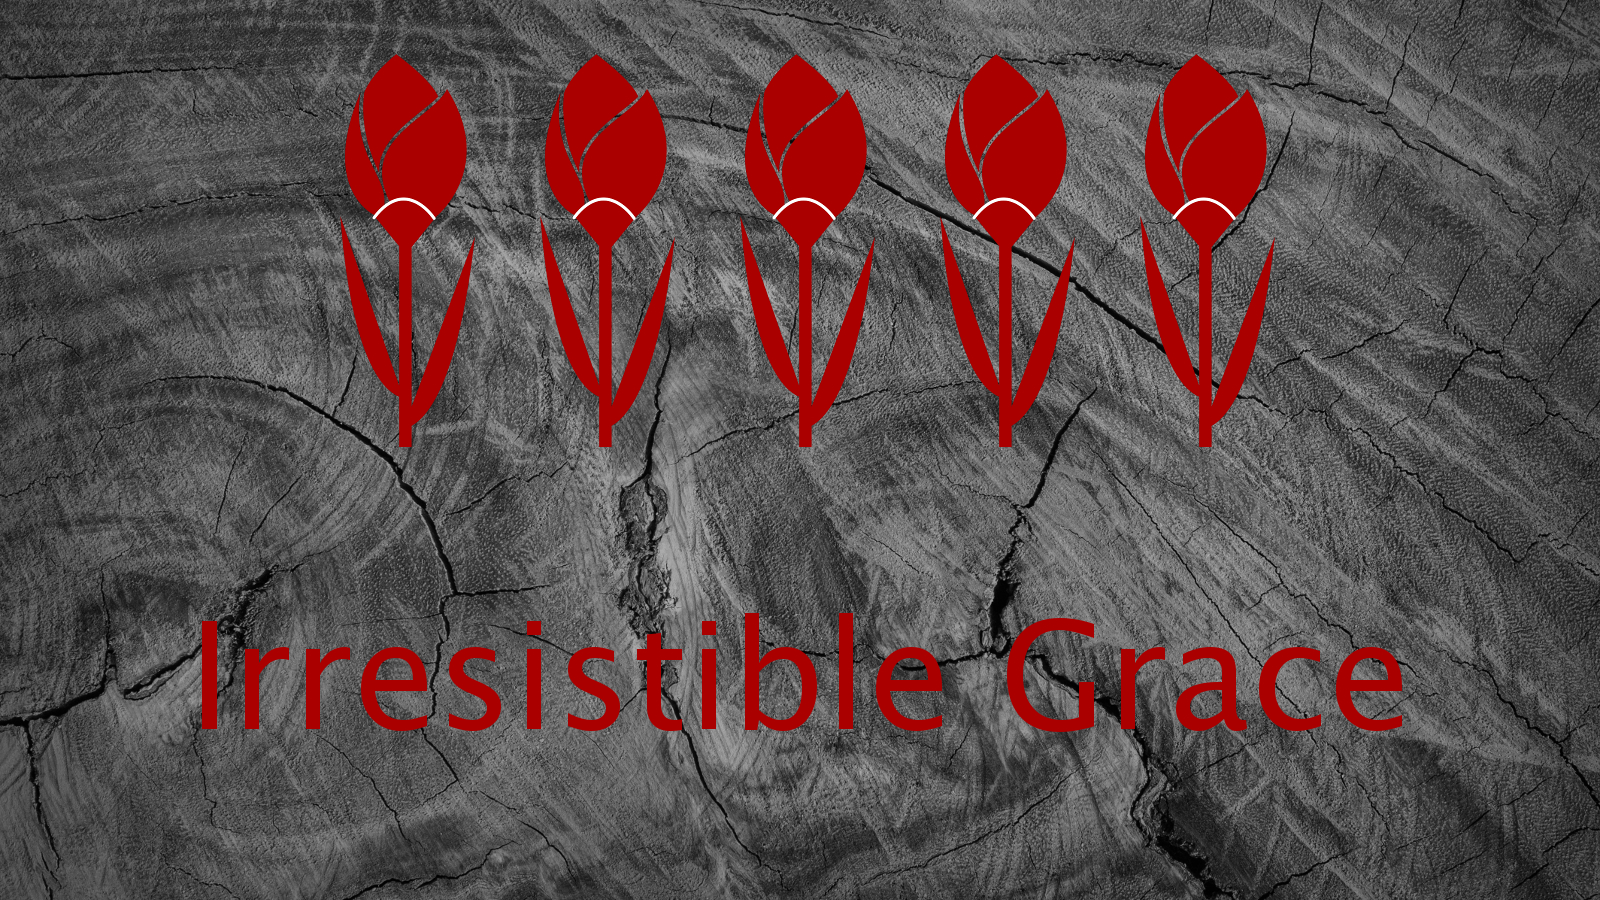 Irresistible Grace